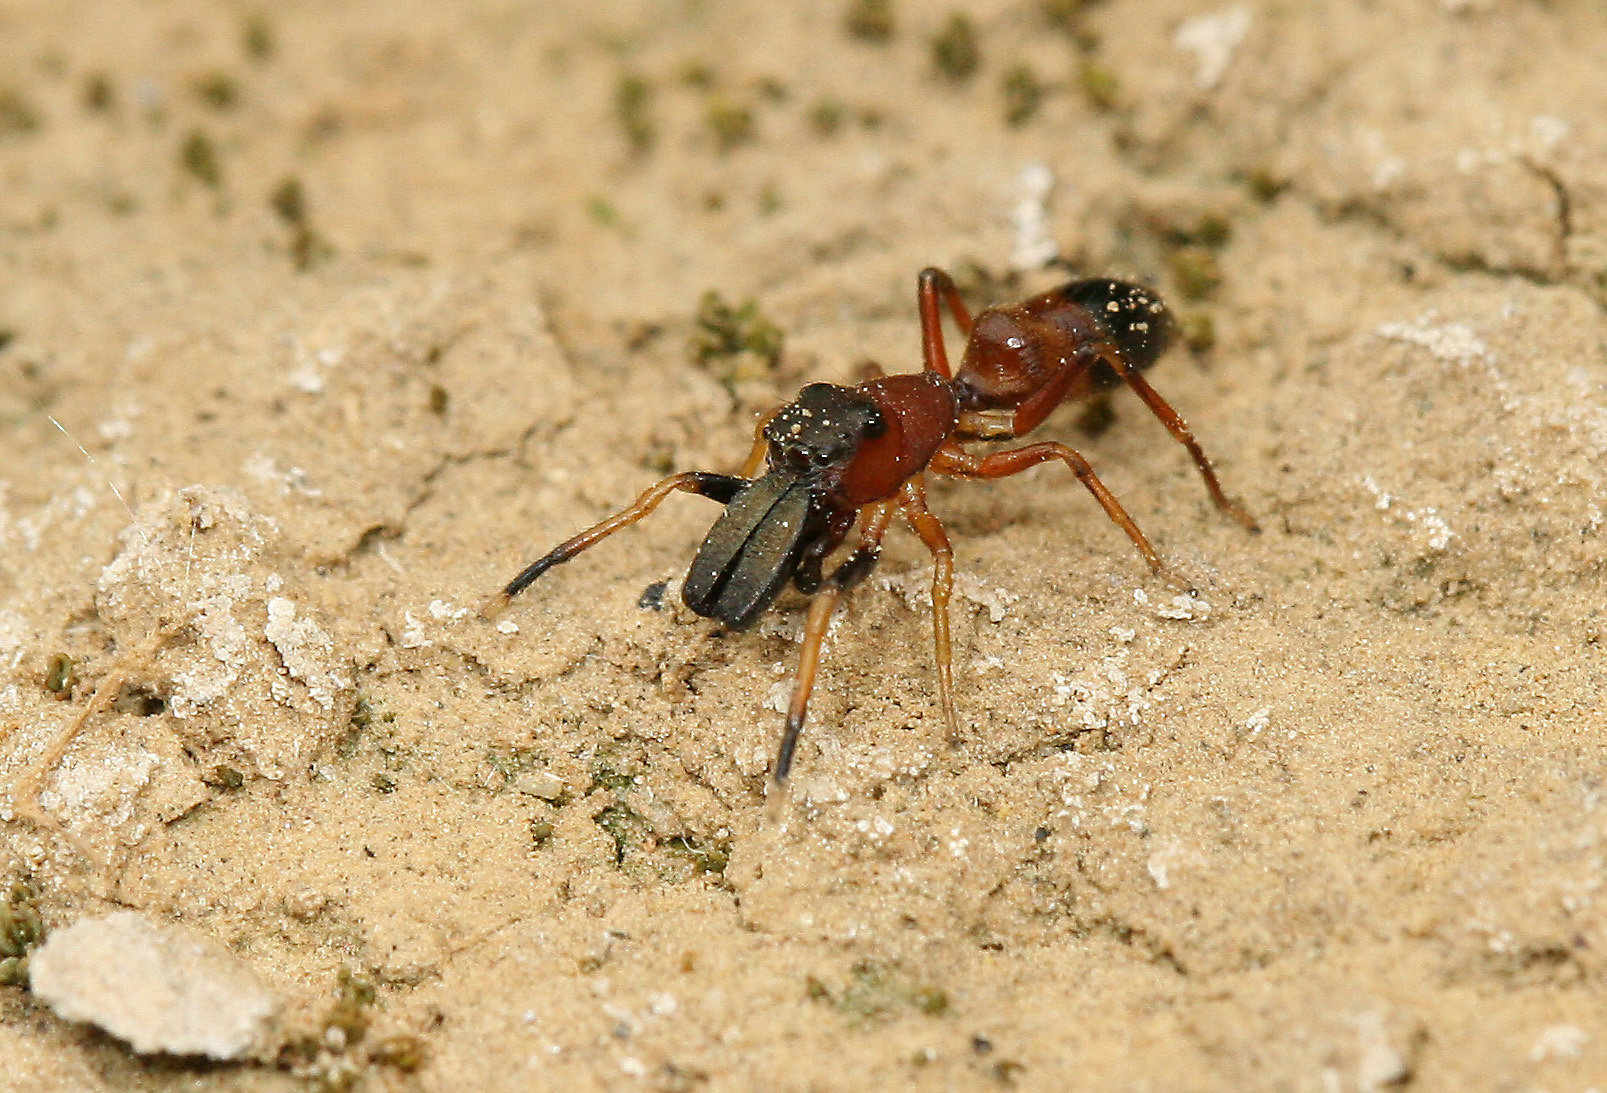 Male ant mimic jumping spider